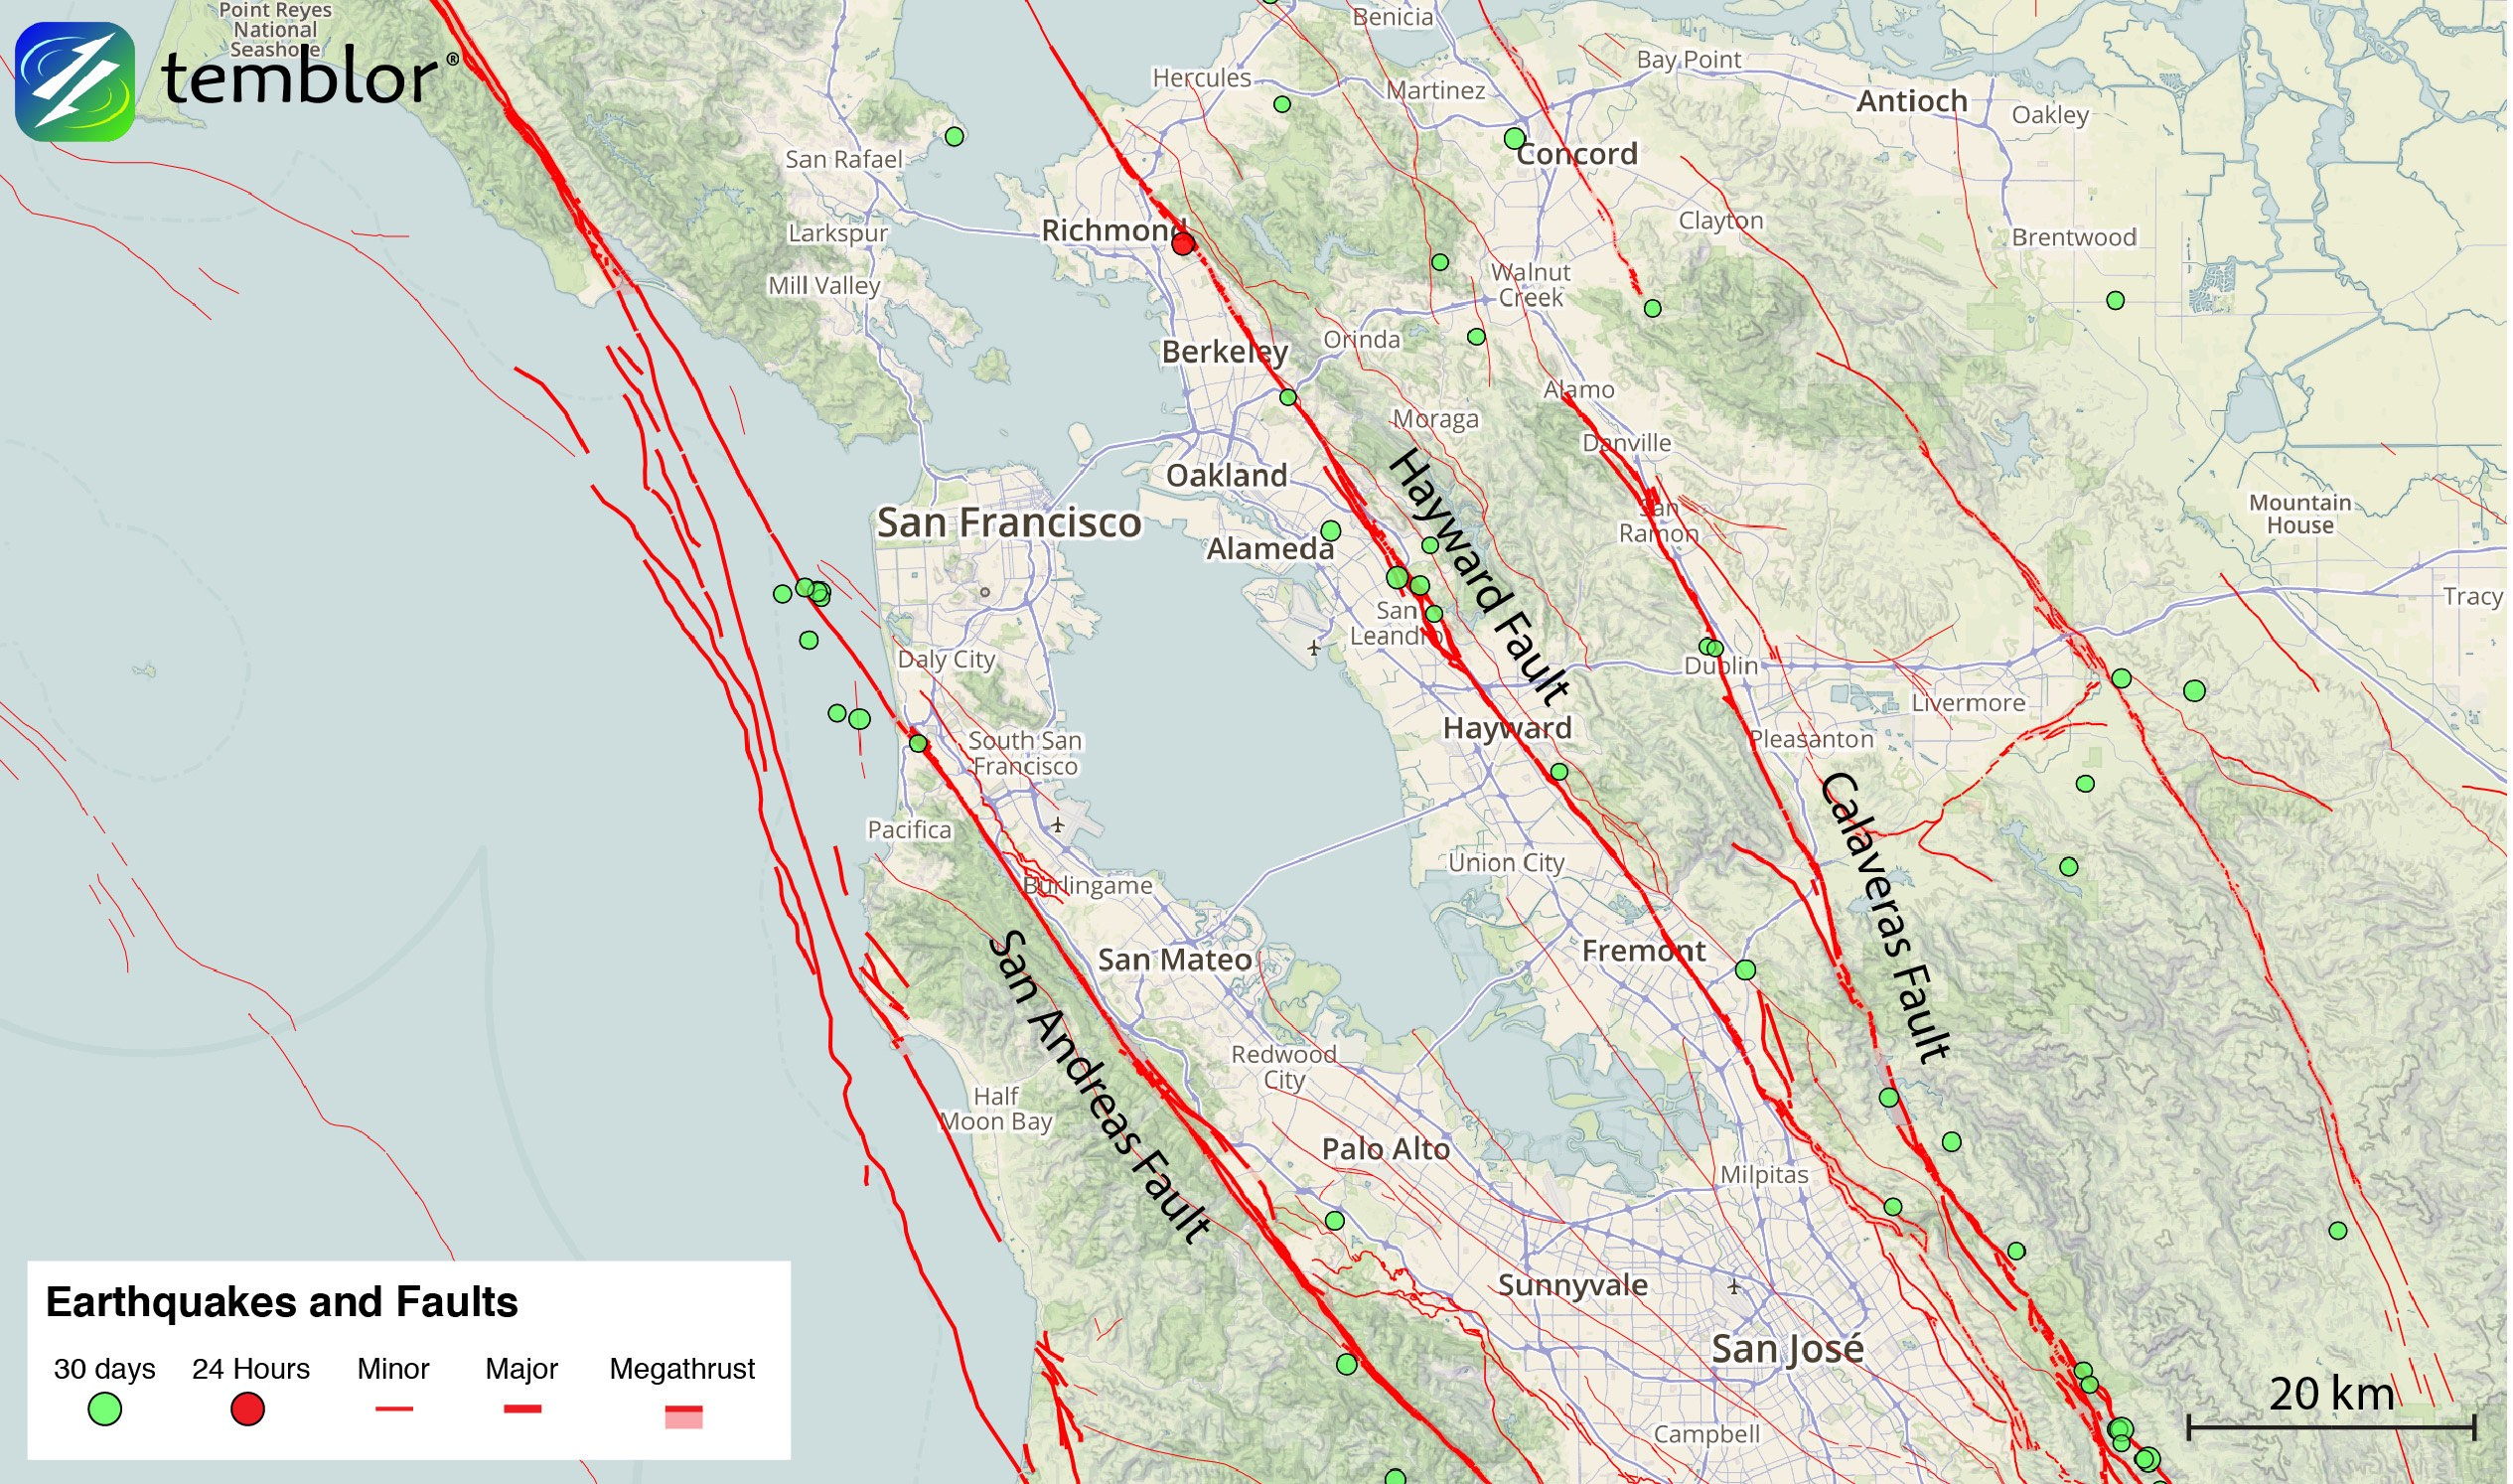 Bay Area Fault Map : Here's a map of the significant fault lines and strong earthquakes in the bay area.